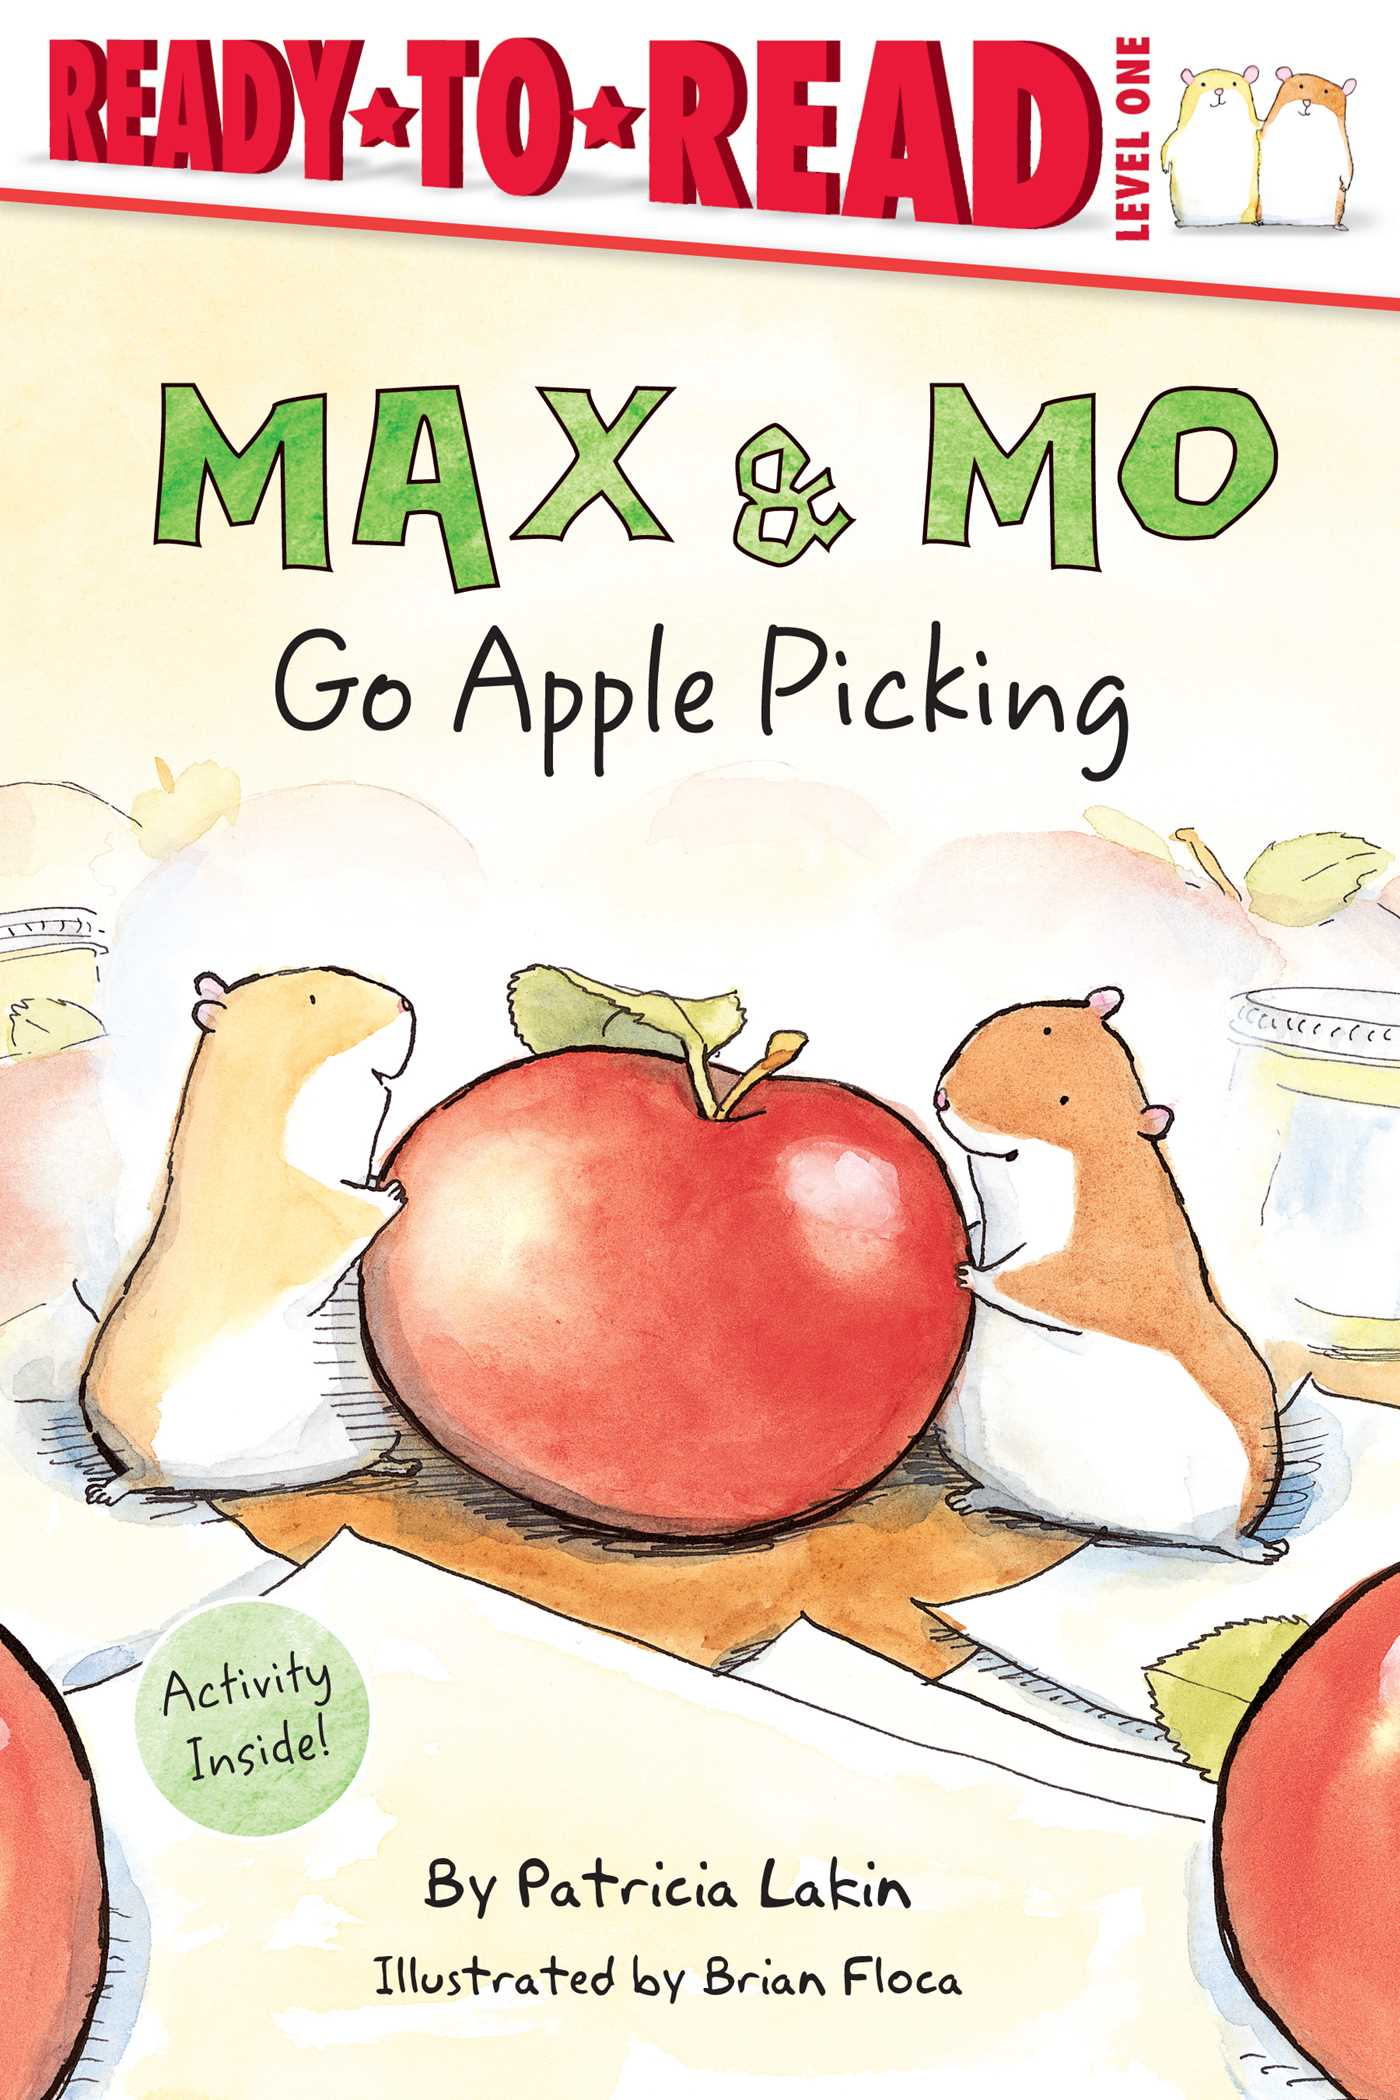 Max mo go apple picking 9781442426276 hr